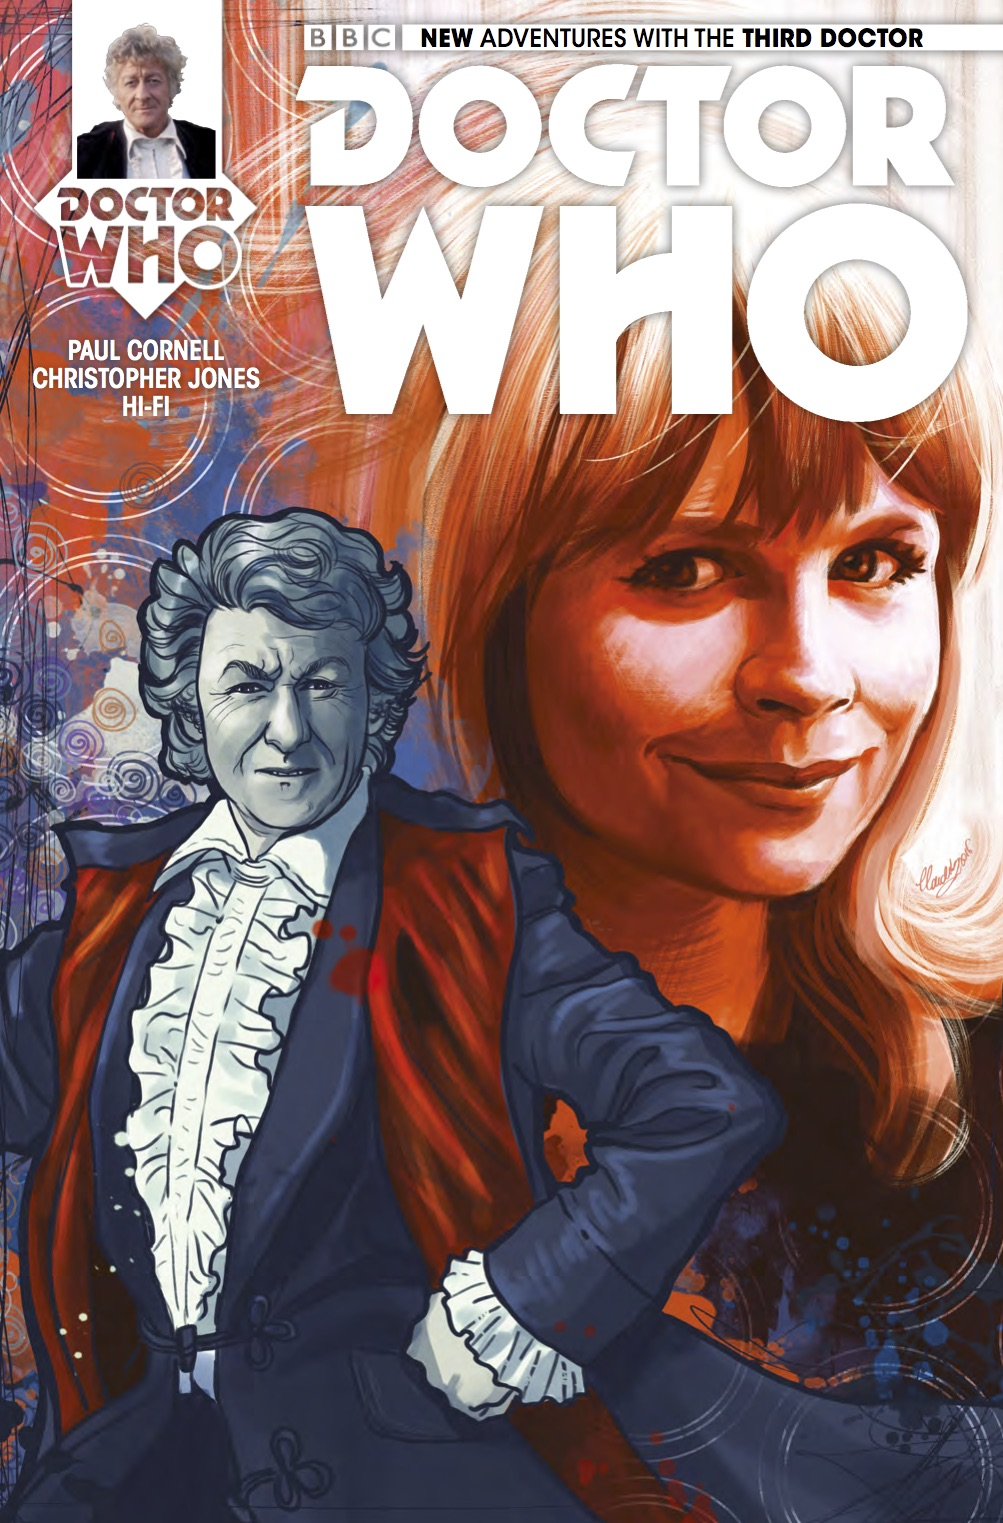 DOCTOR WHO THIRD DOCTOR #4 Cover_C (Credit: Titan)